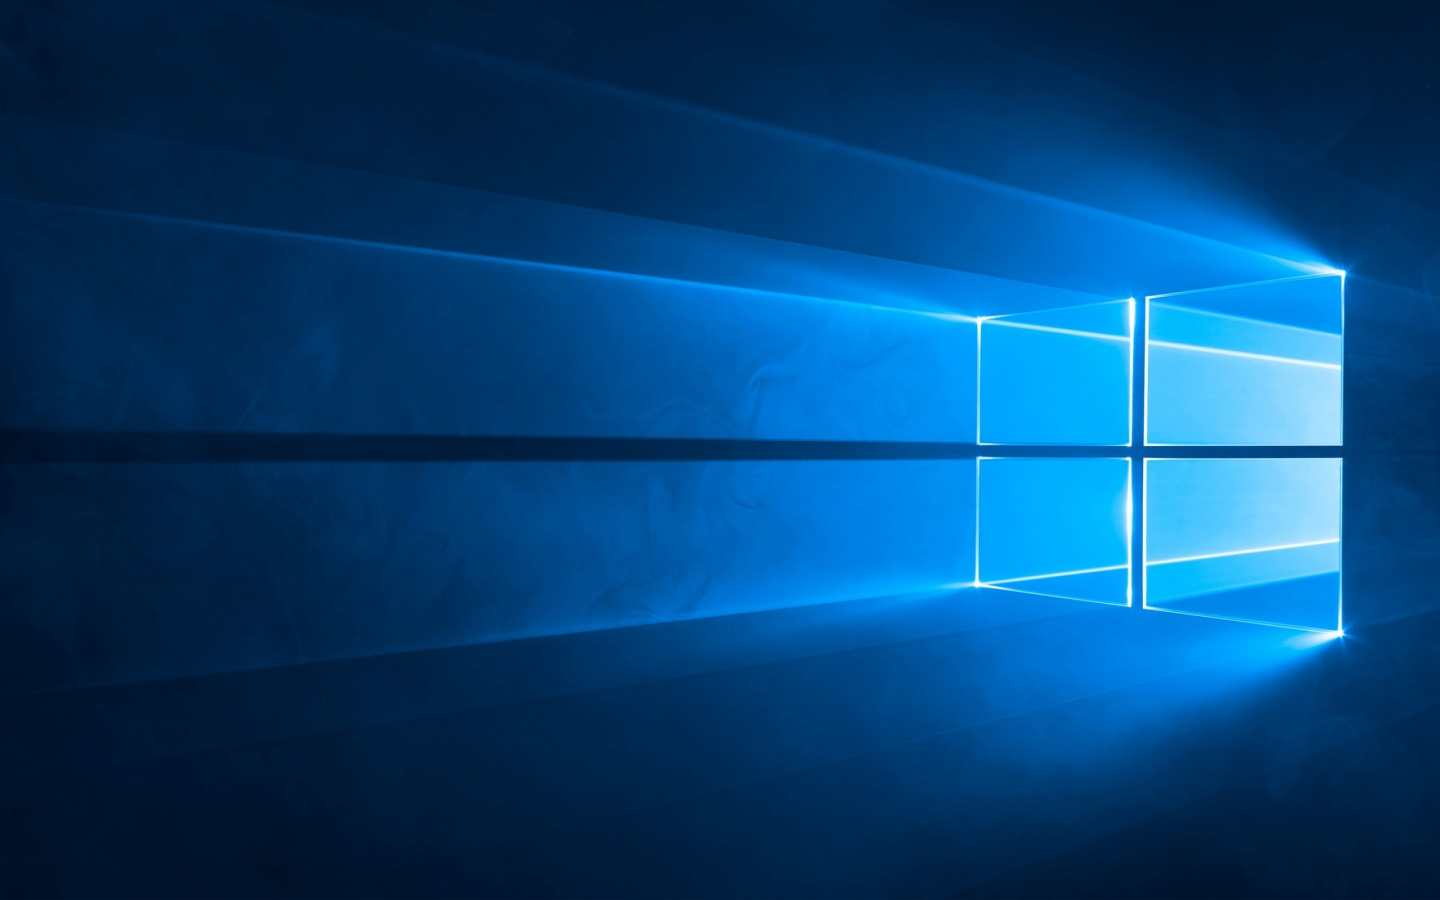 windows 10 wallpaper 1440x900 wallpapersafari